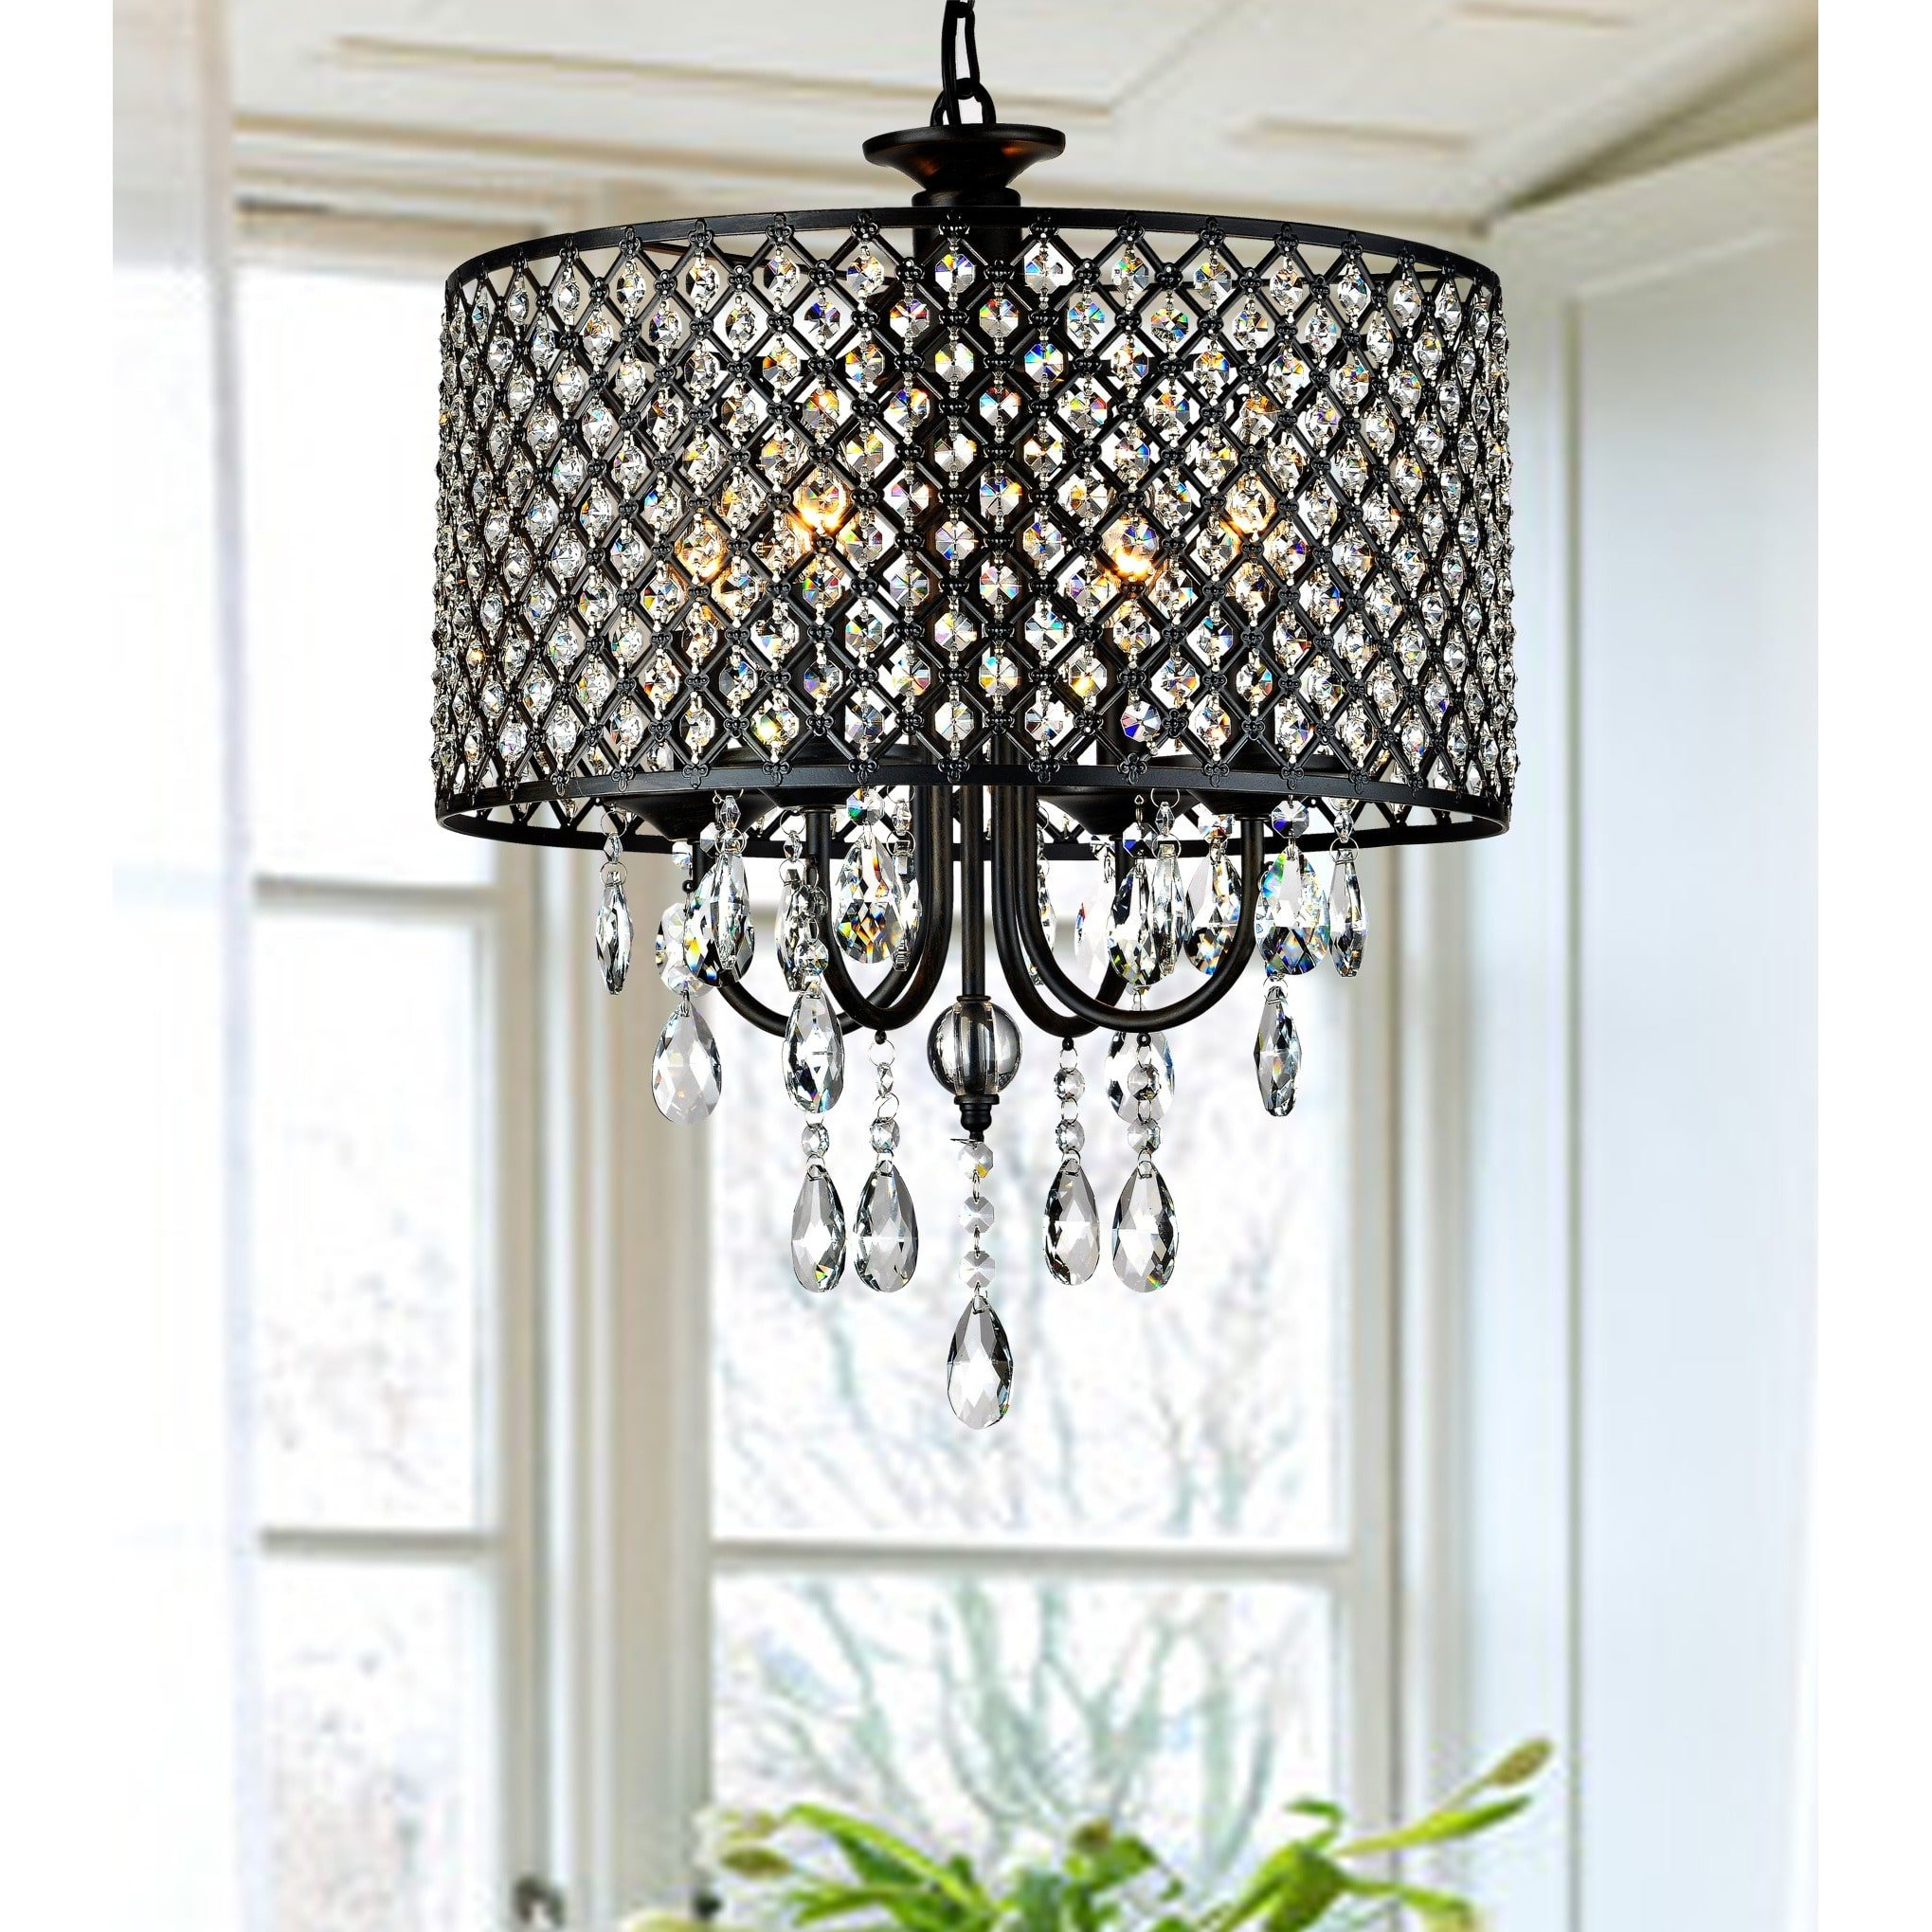 Mckamey 4 Light Crystal Chandelier Intended For Gisselle 4 Light Drum Chandeliers (View 6 of 30)